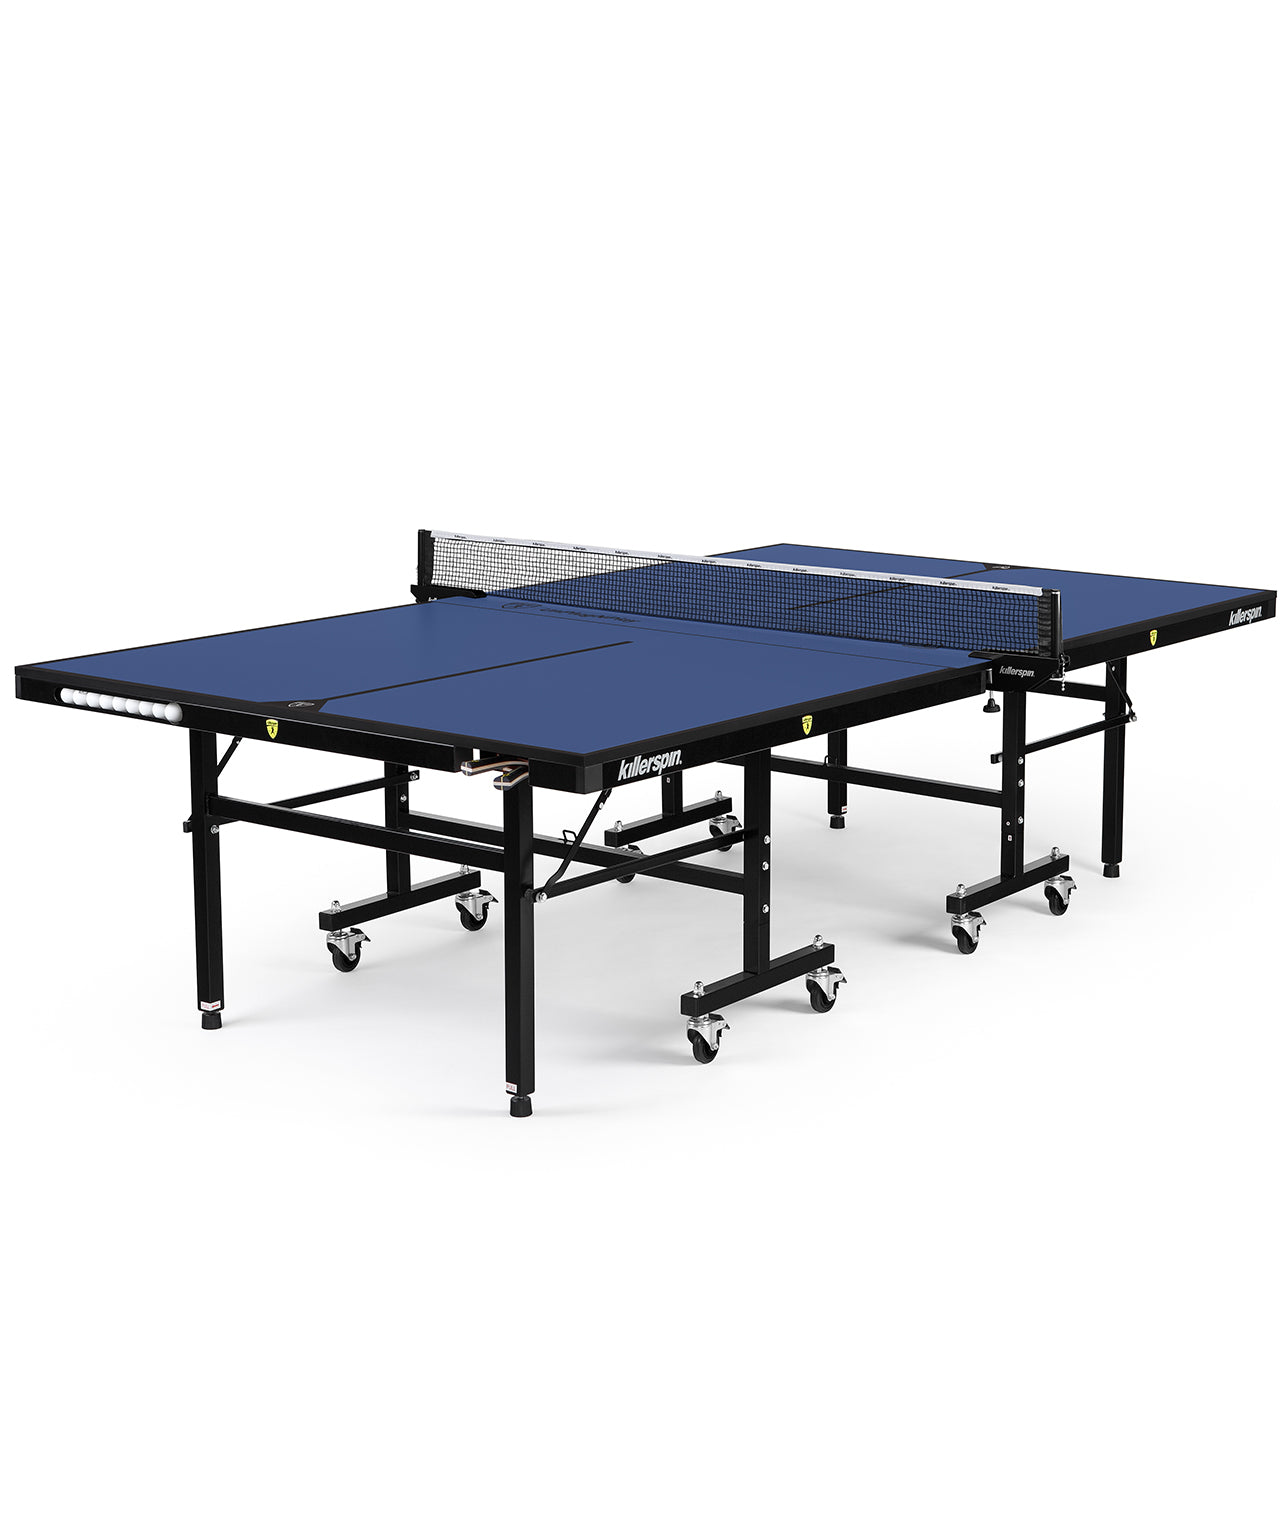 Killerspin Indoor Ping Pong Table UnPlugNPlay415 Mega DeepBlu Black frame Blue top model 2020